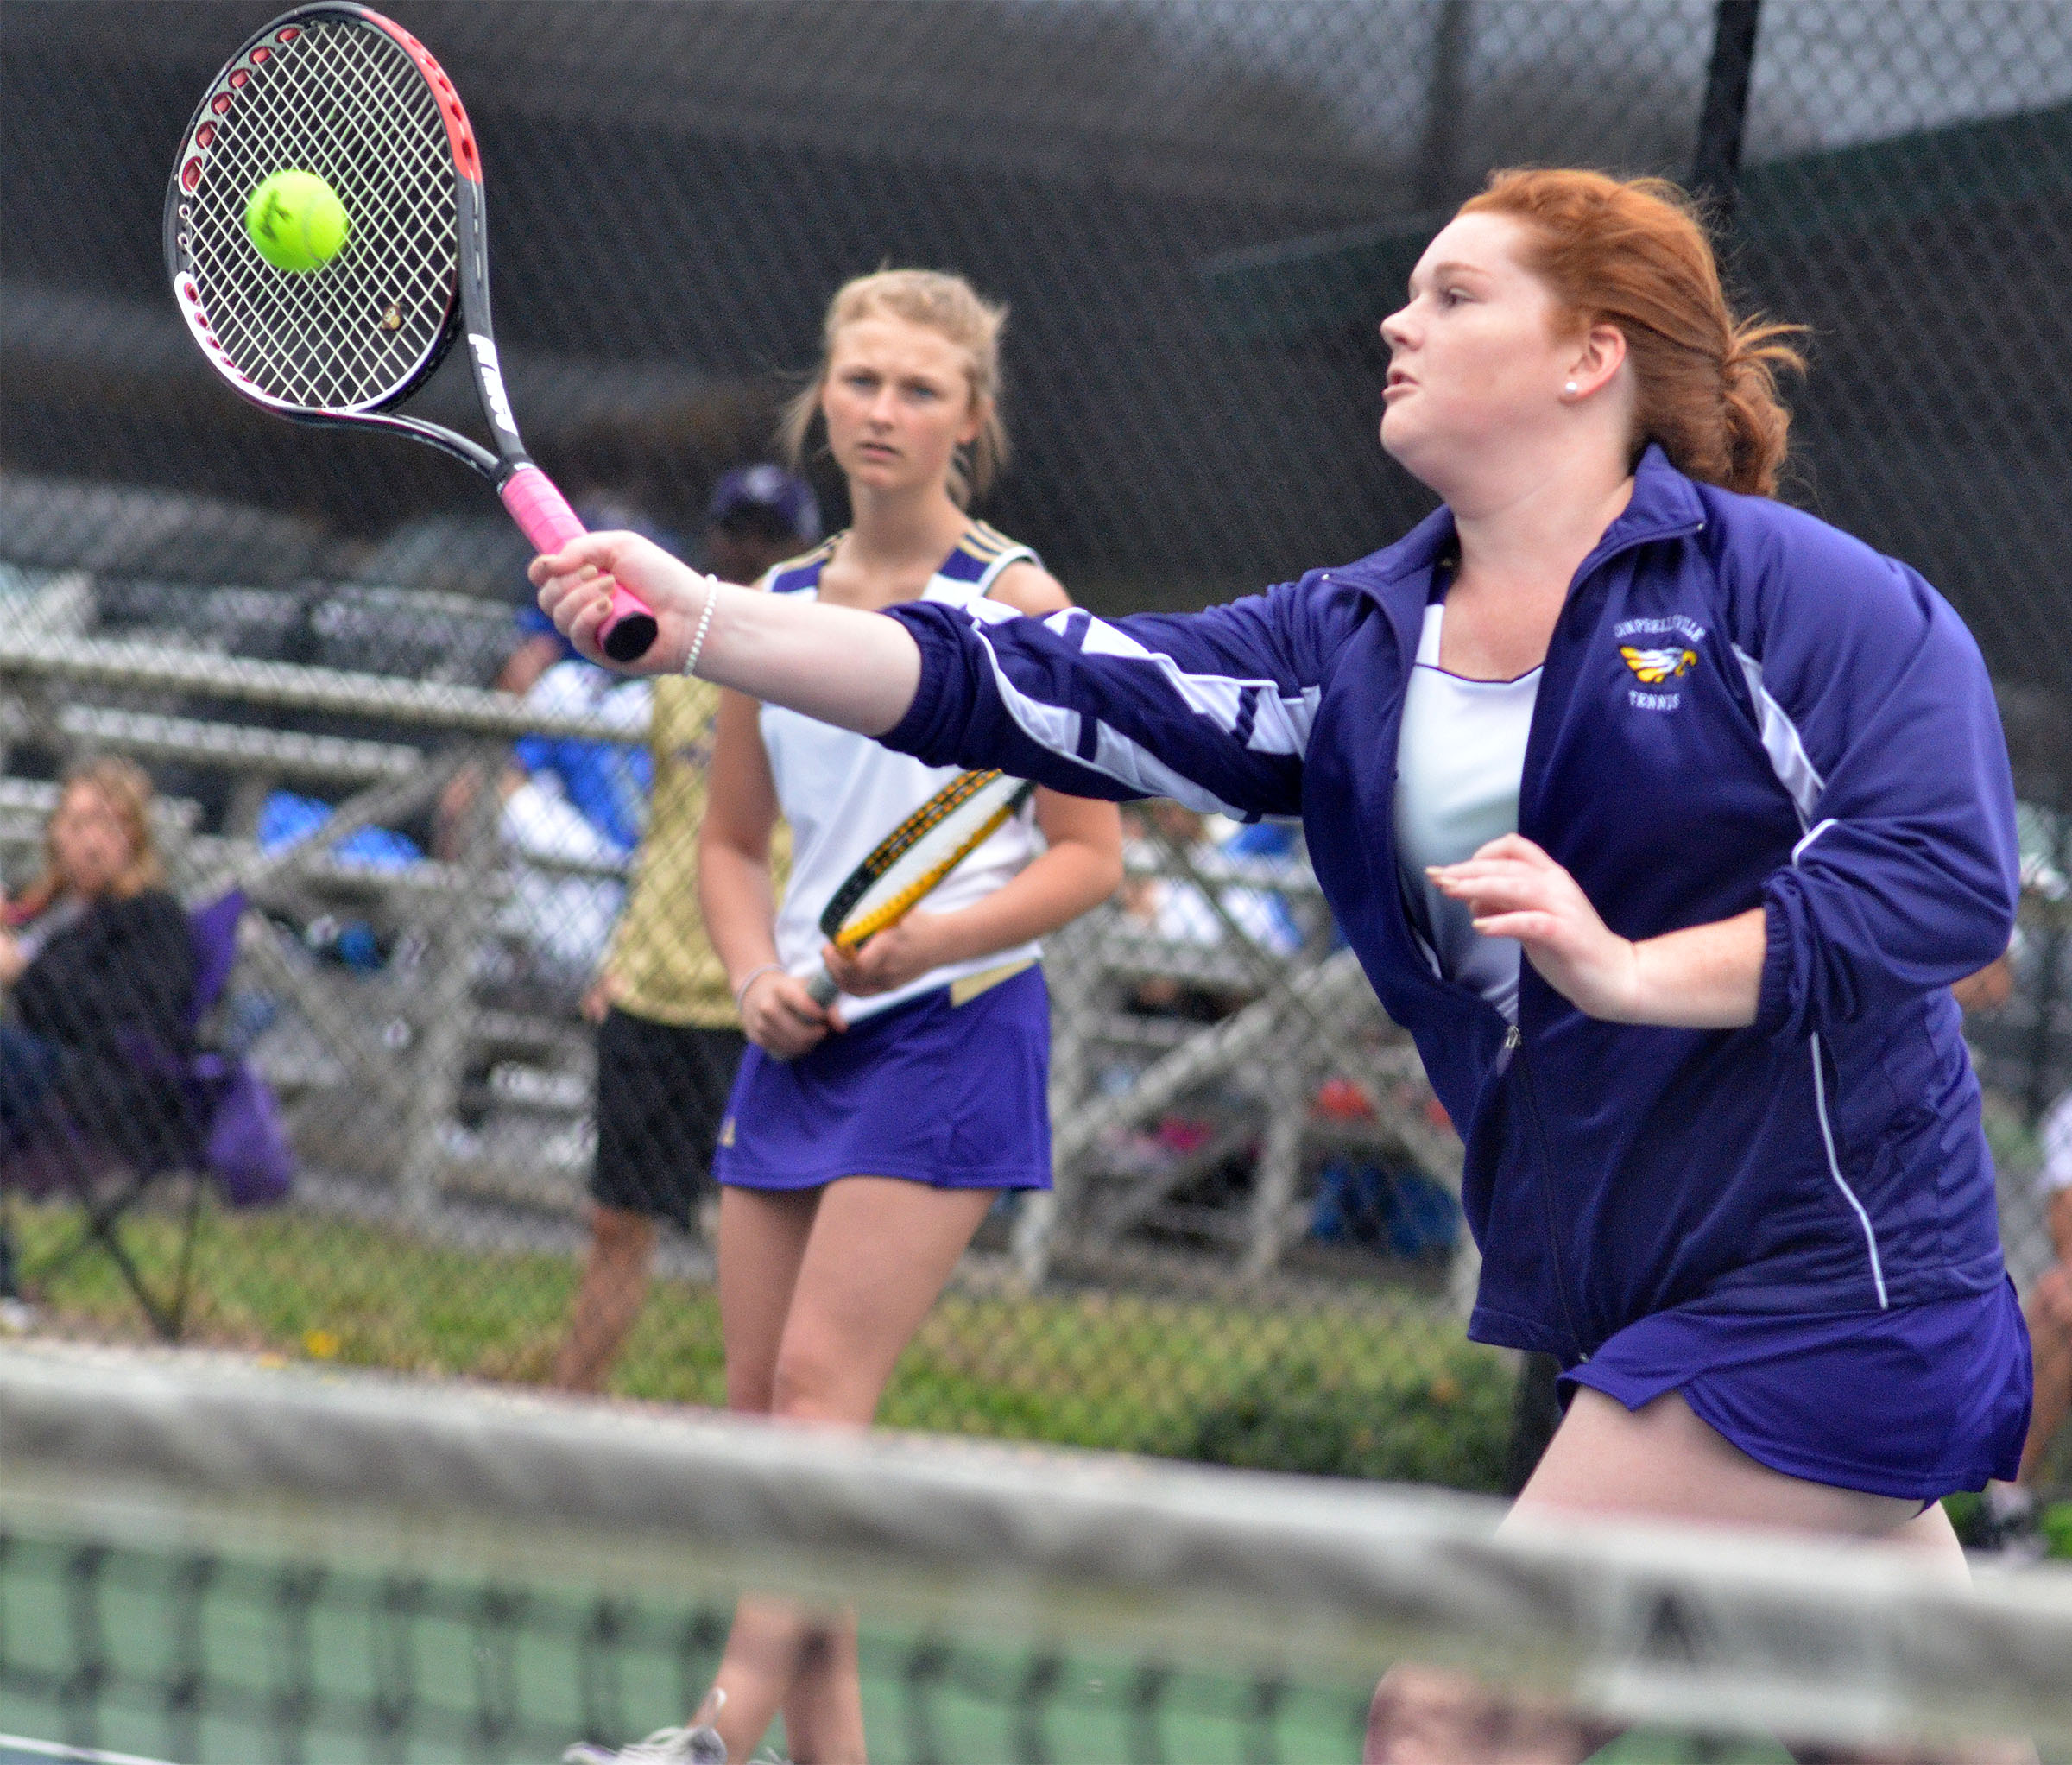 CHS senior Mallory Haley hits the ball in her doubles match with freshman Victoria Cox.